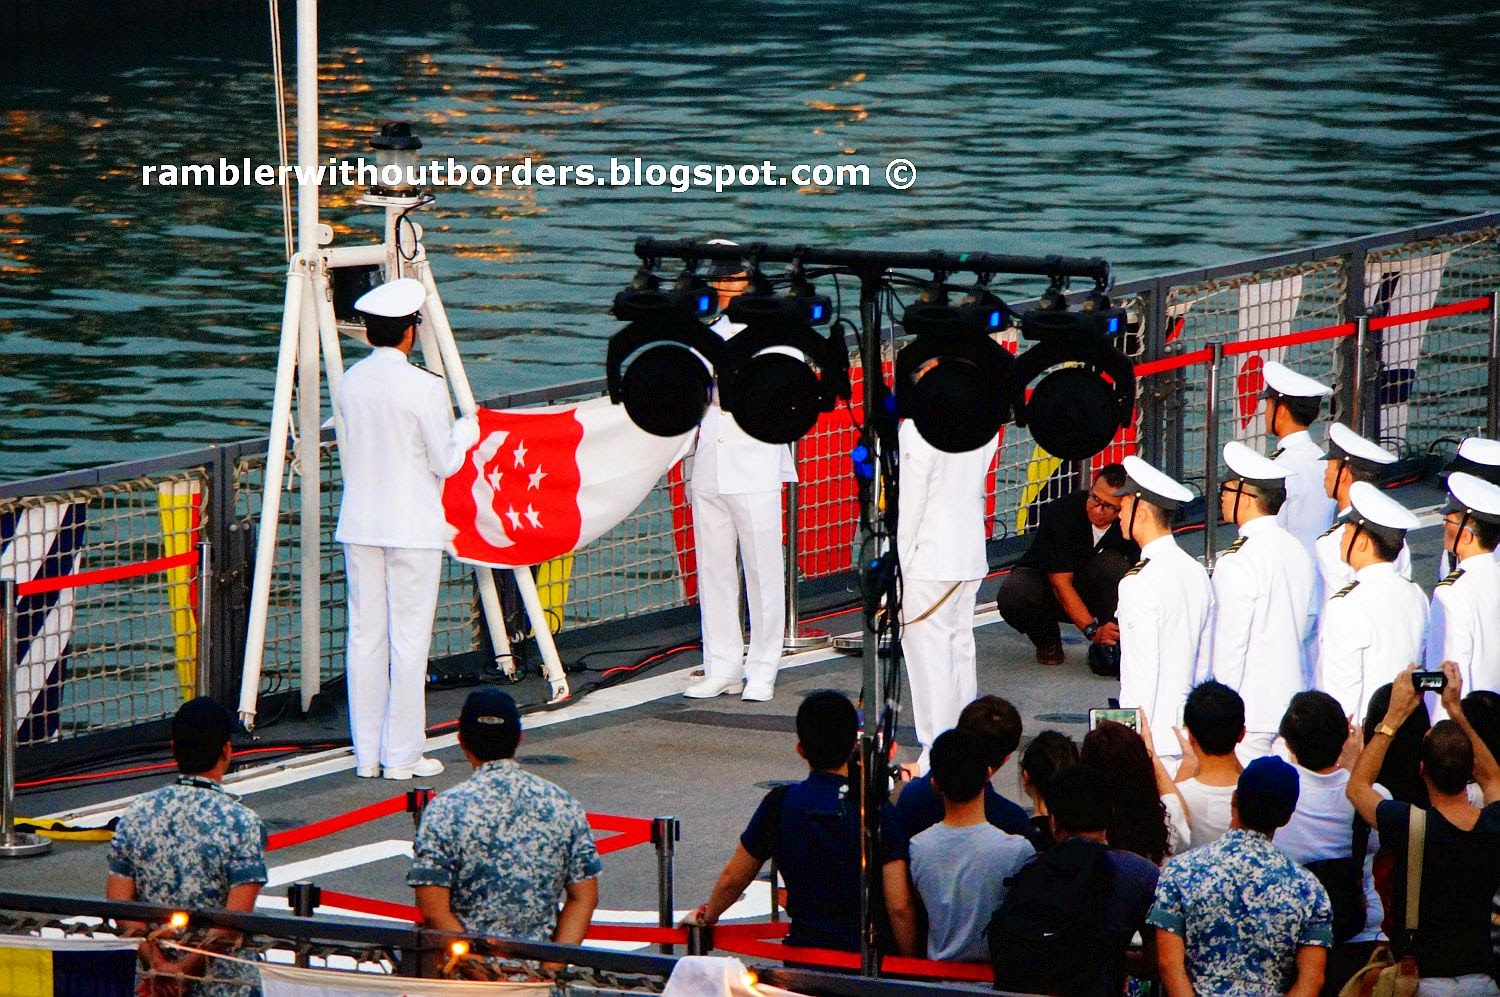 Flag folding during the Sunset Ceremony took place on RSS Endurance, Singapore